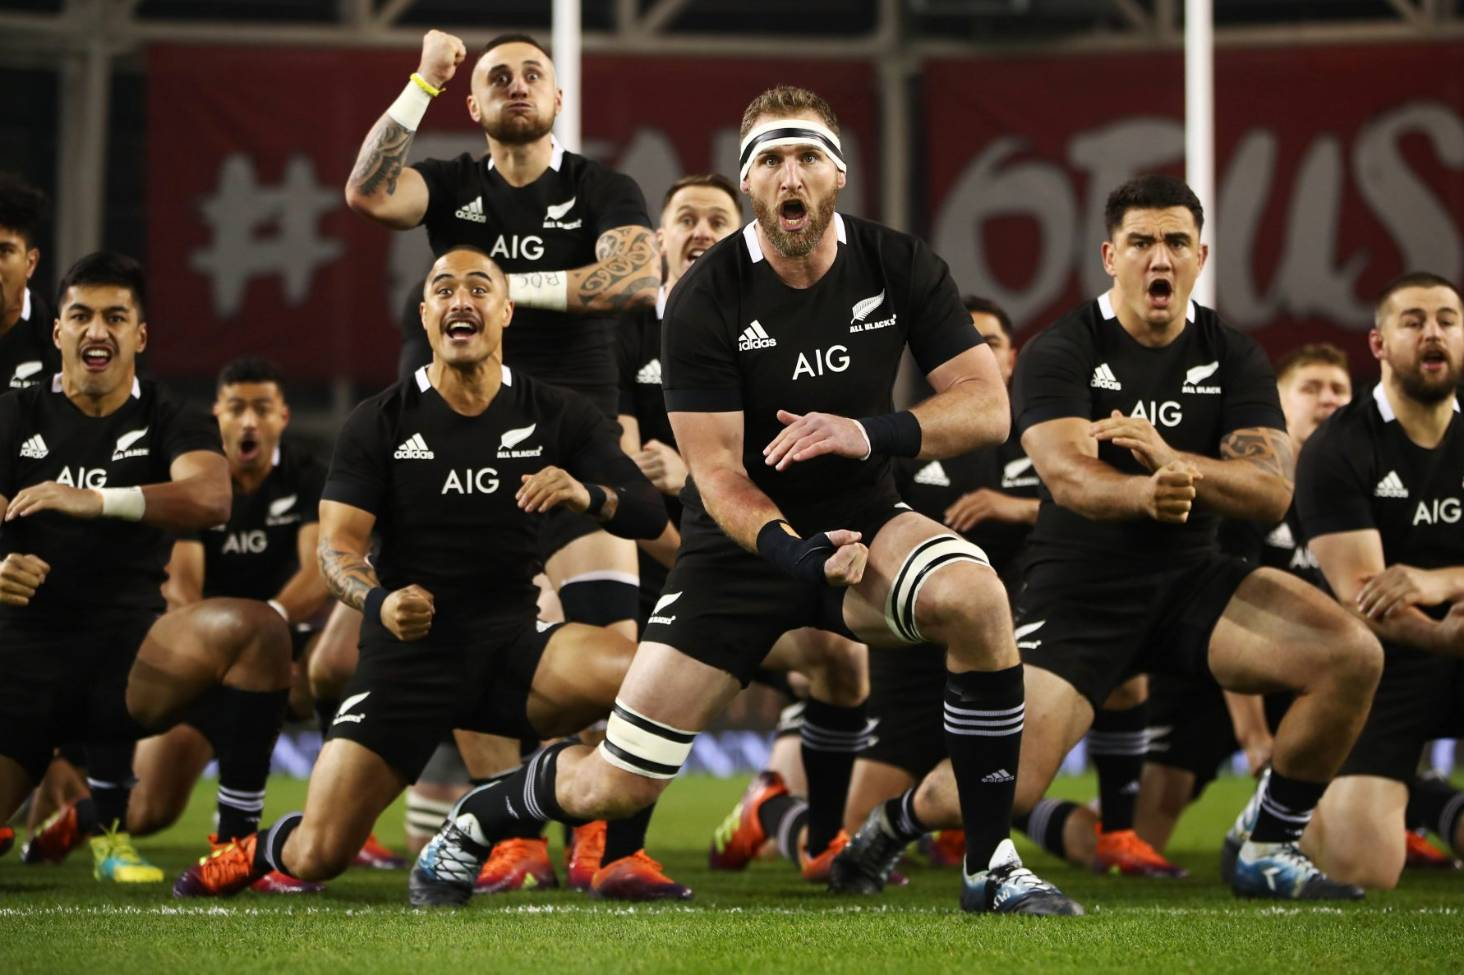 The All Blacks' haka is a marketing ploy and 'insulting' to Māori, claims  Irish critic | Stuff.co.nz